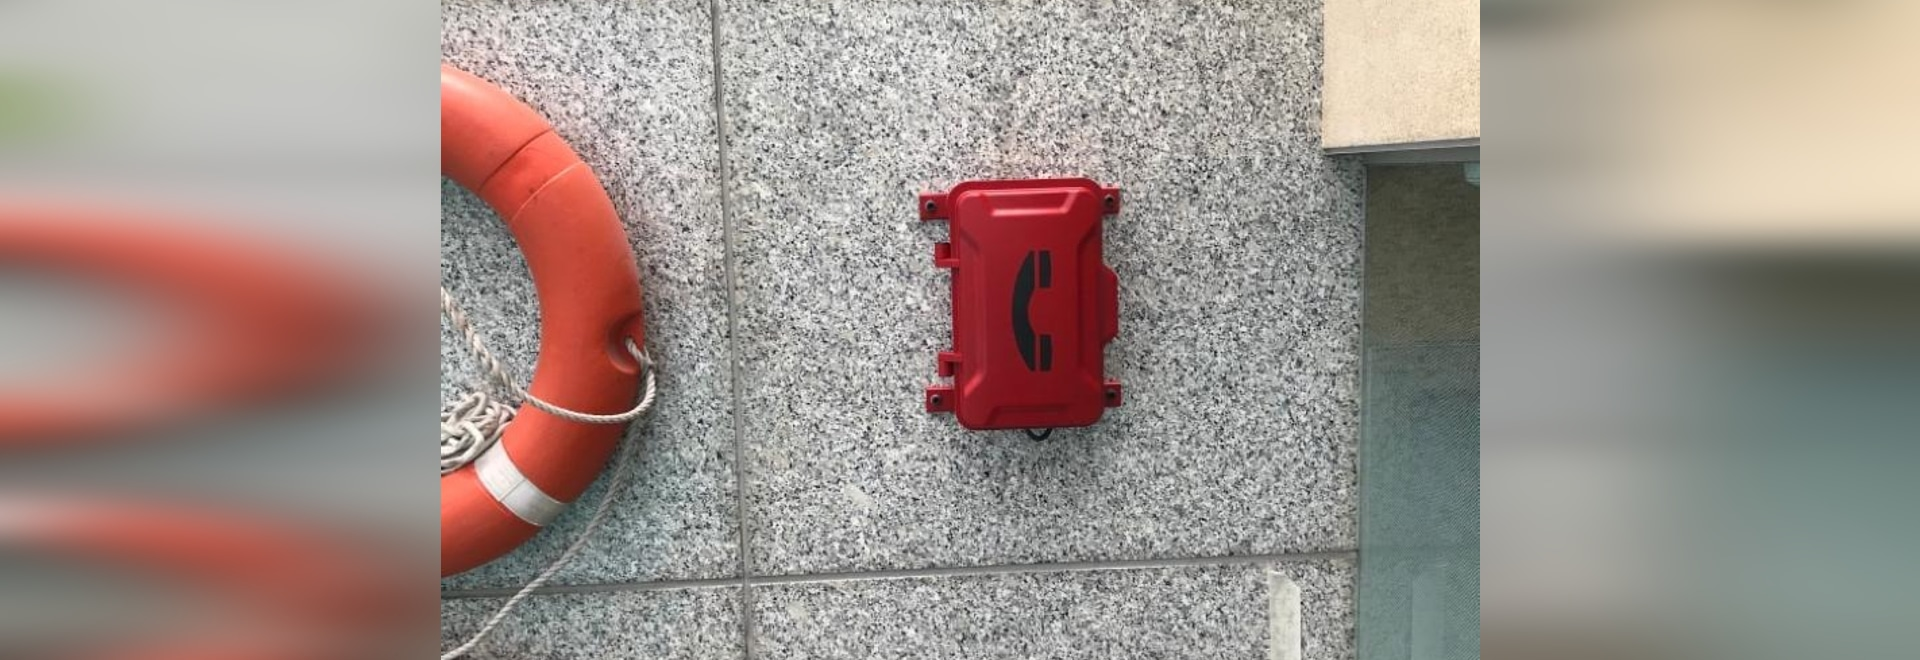 Our JR101-CB emergency phone was installed at the Hilton Hotel in Peru